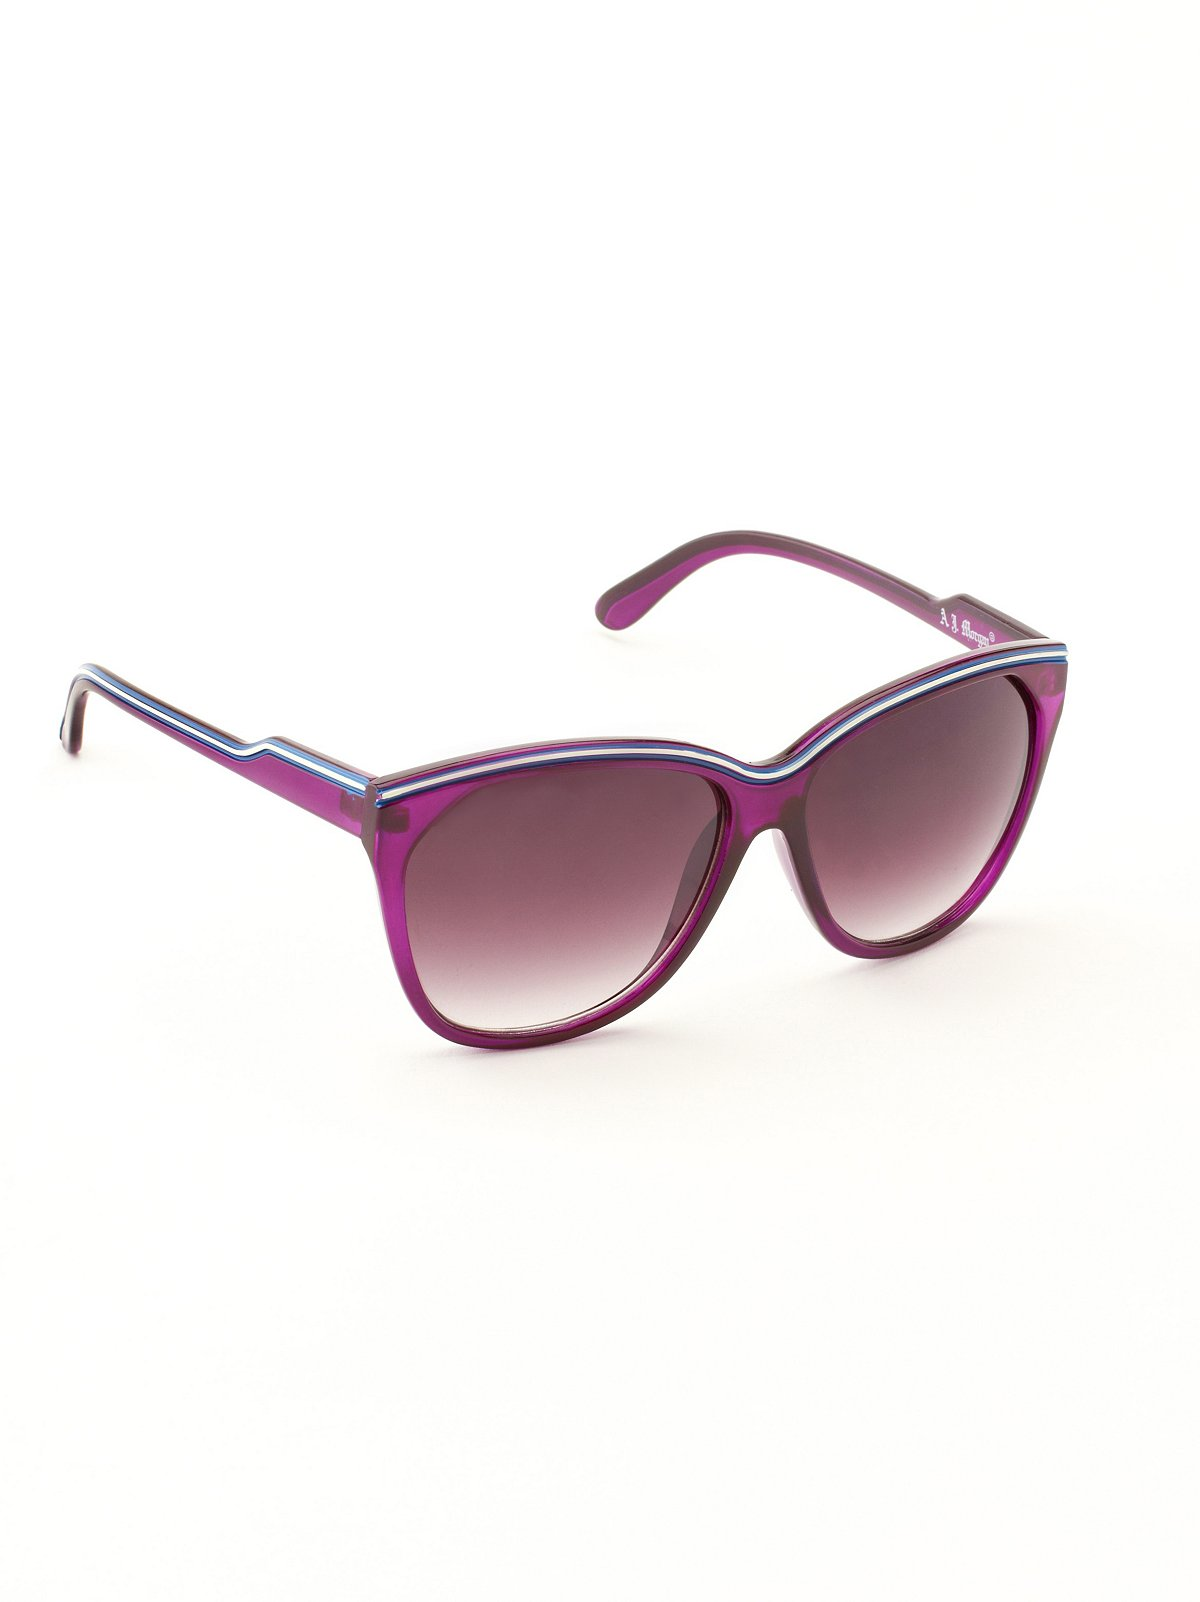 Vanna Sunglasses